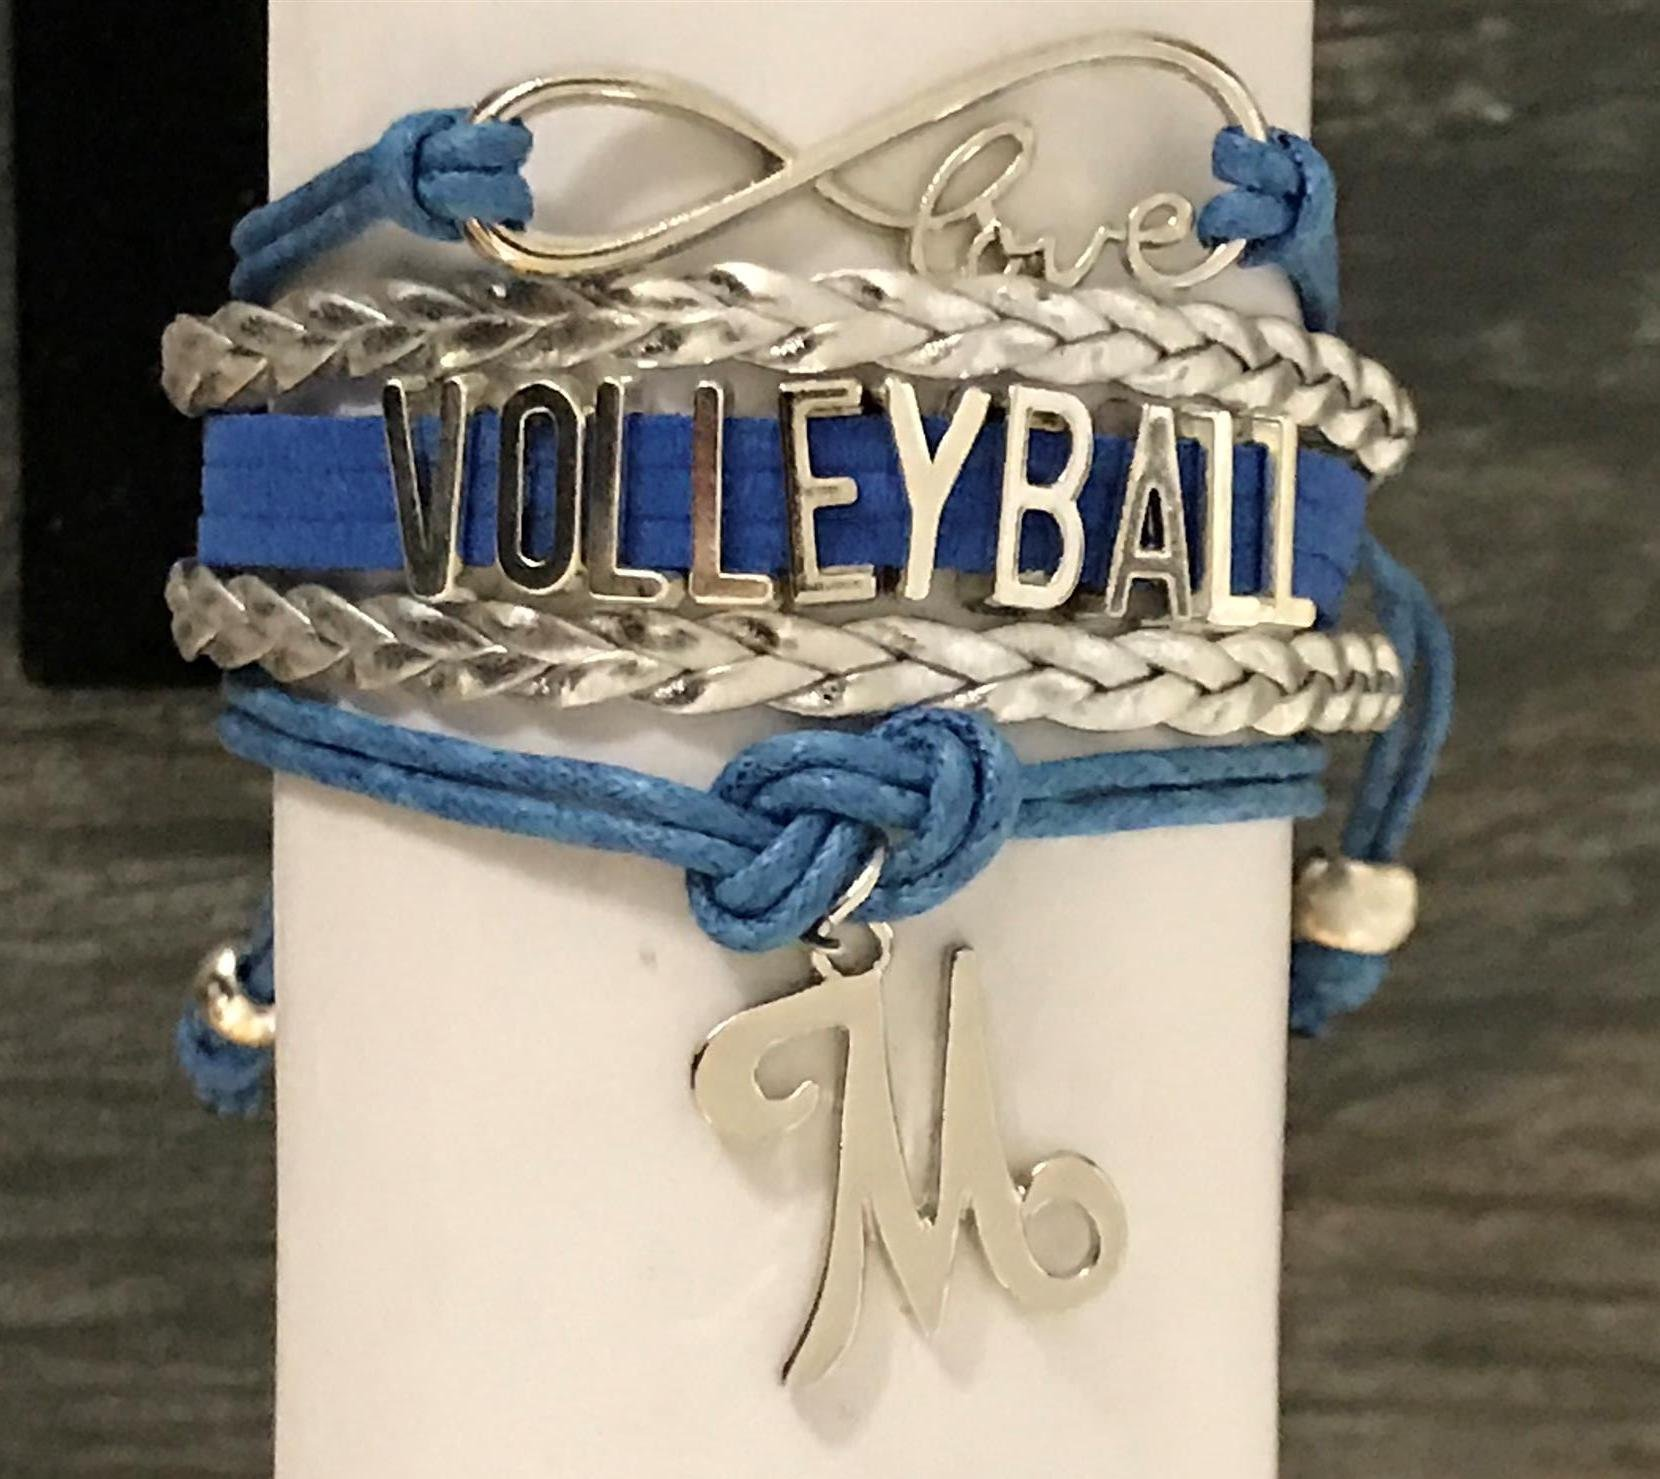 Personalized Volleyball Infinity Charm Bracelet with Letter Charm, Custom Girls Volleyball Jewelry - Perfect Gift For Volleyball Players & Teams